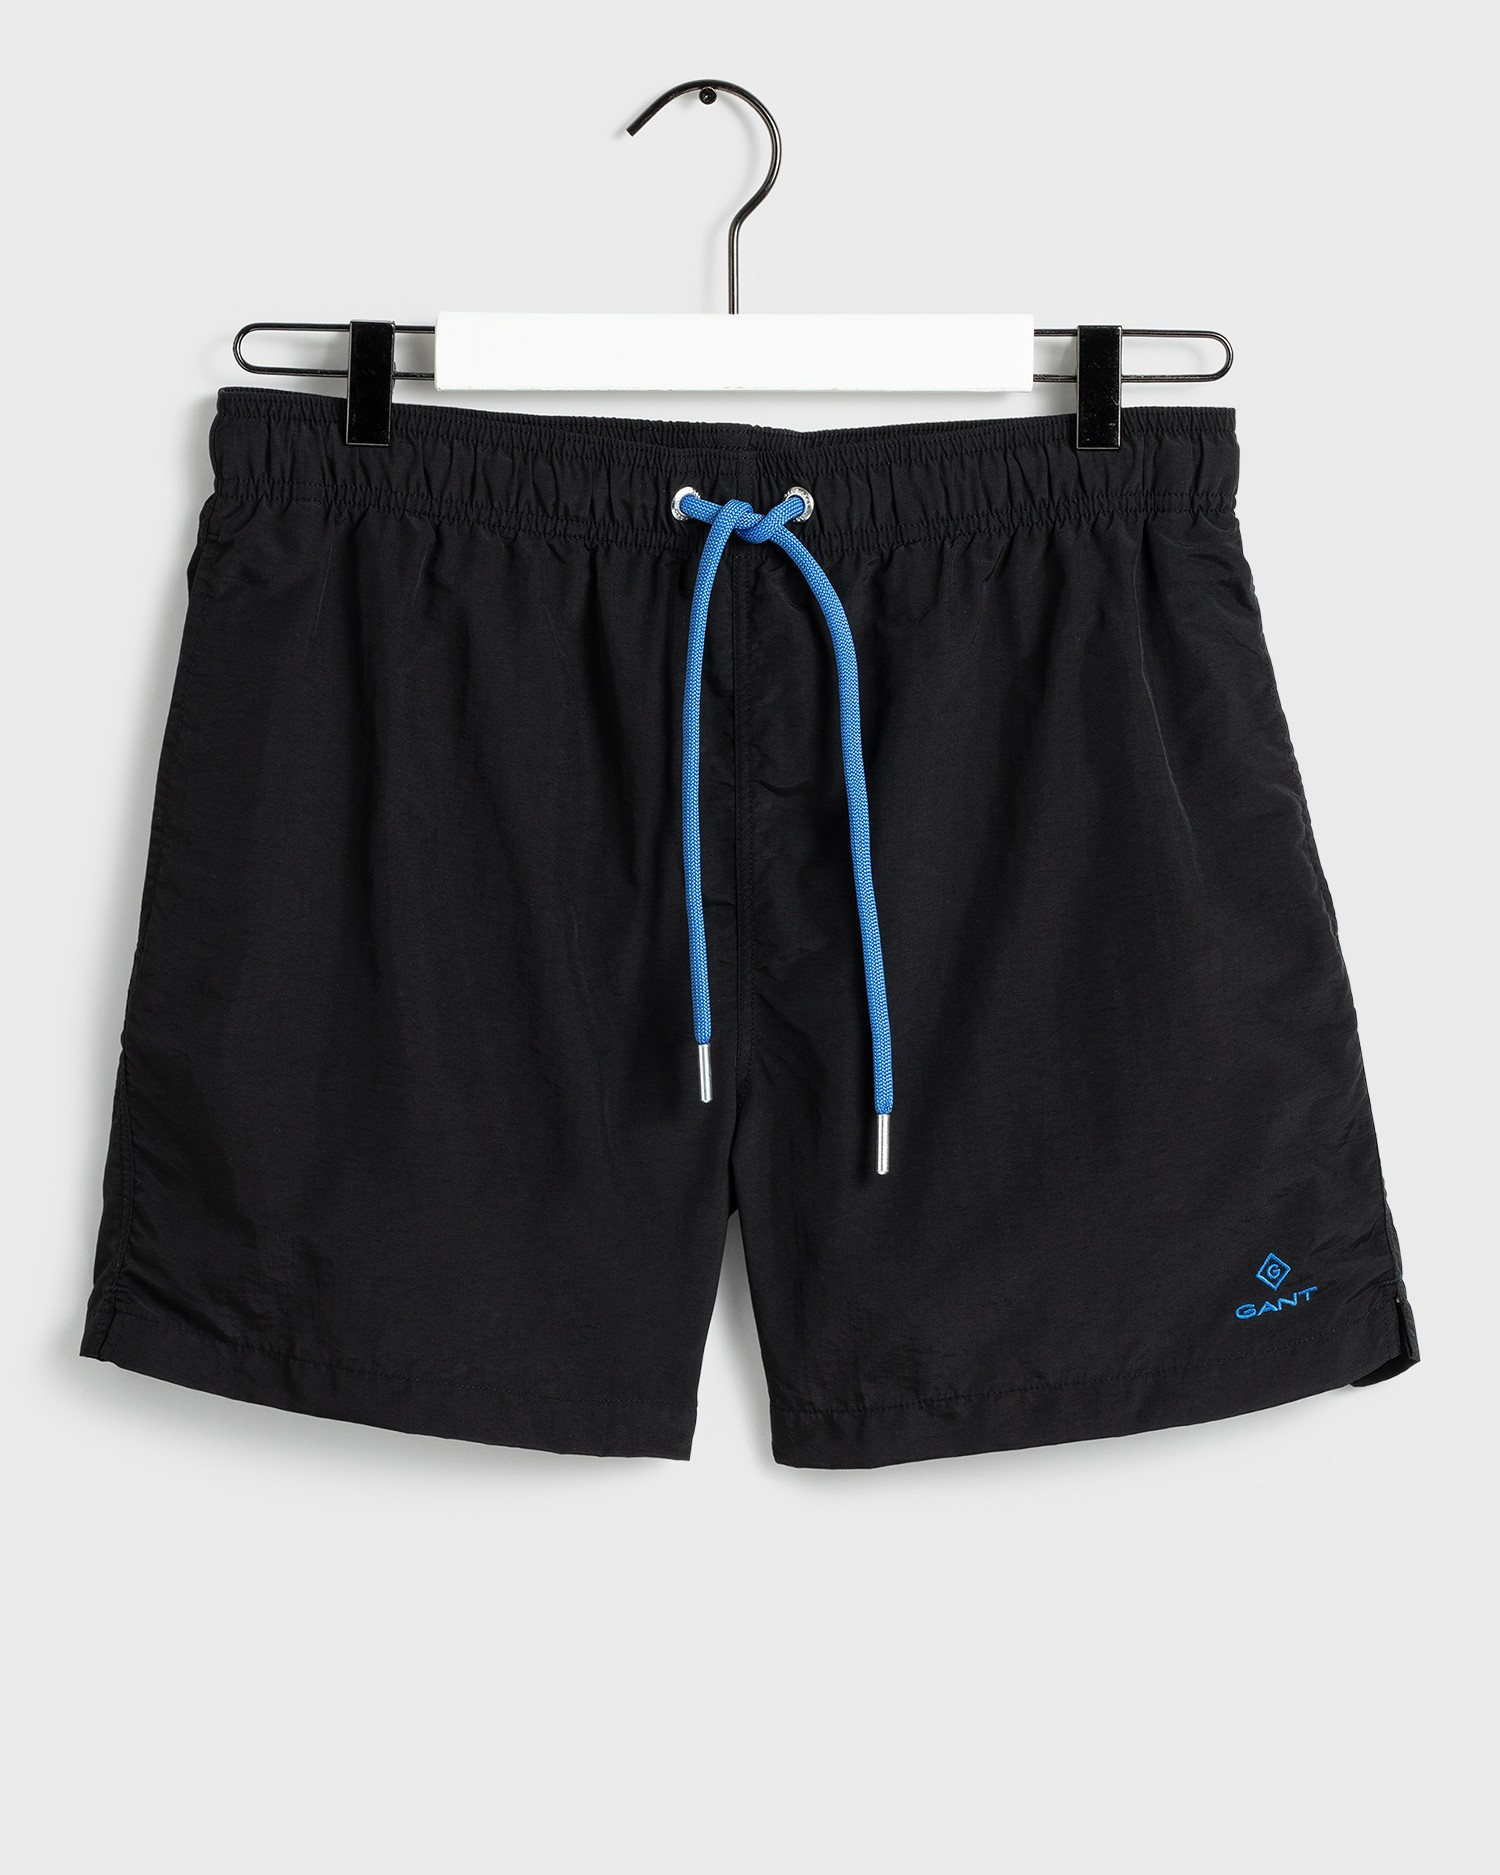 GANT Men's Swimwear - 922016001